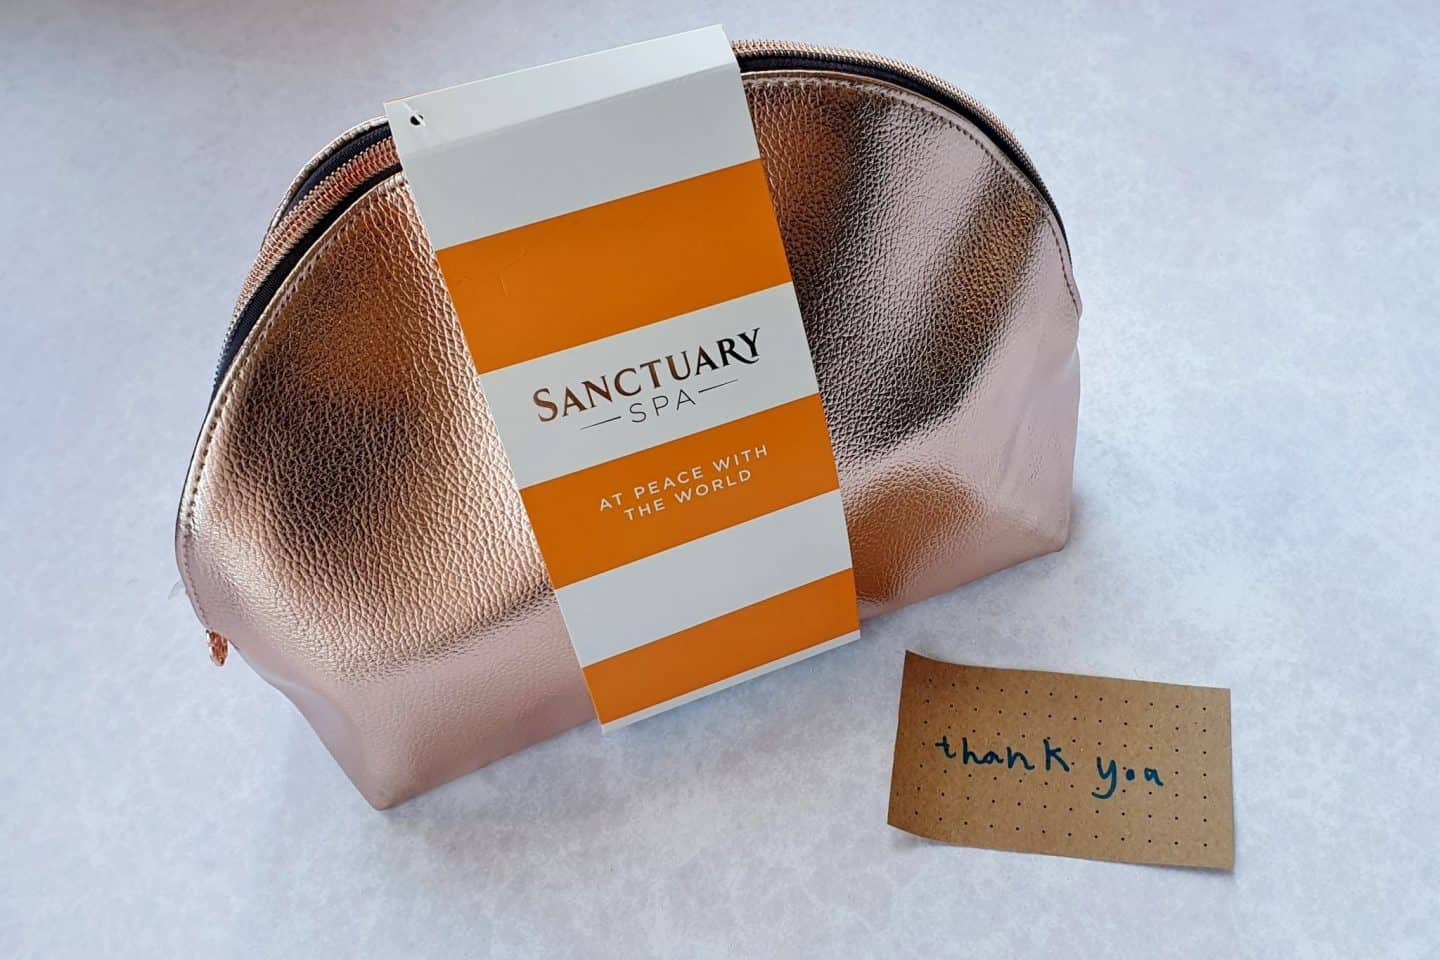 Sanctuary gift set in rose gold bag